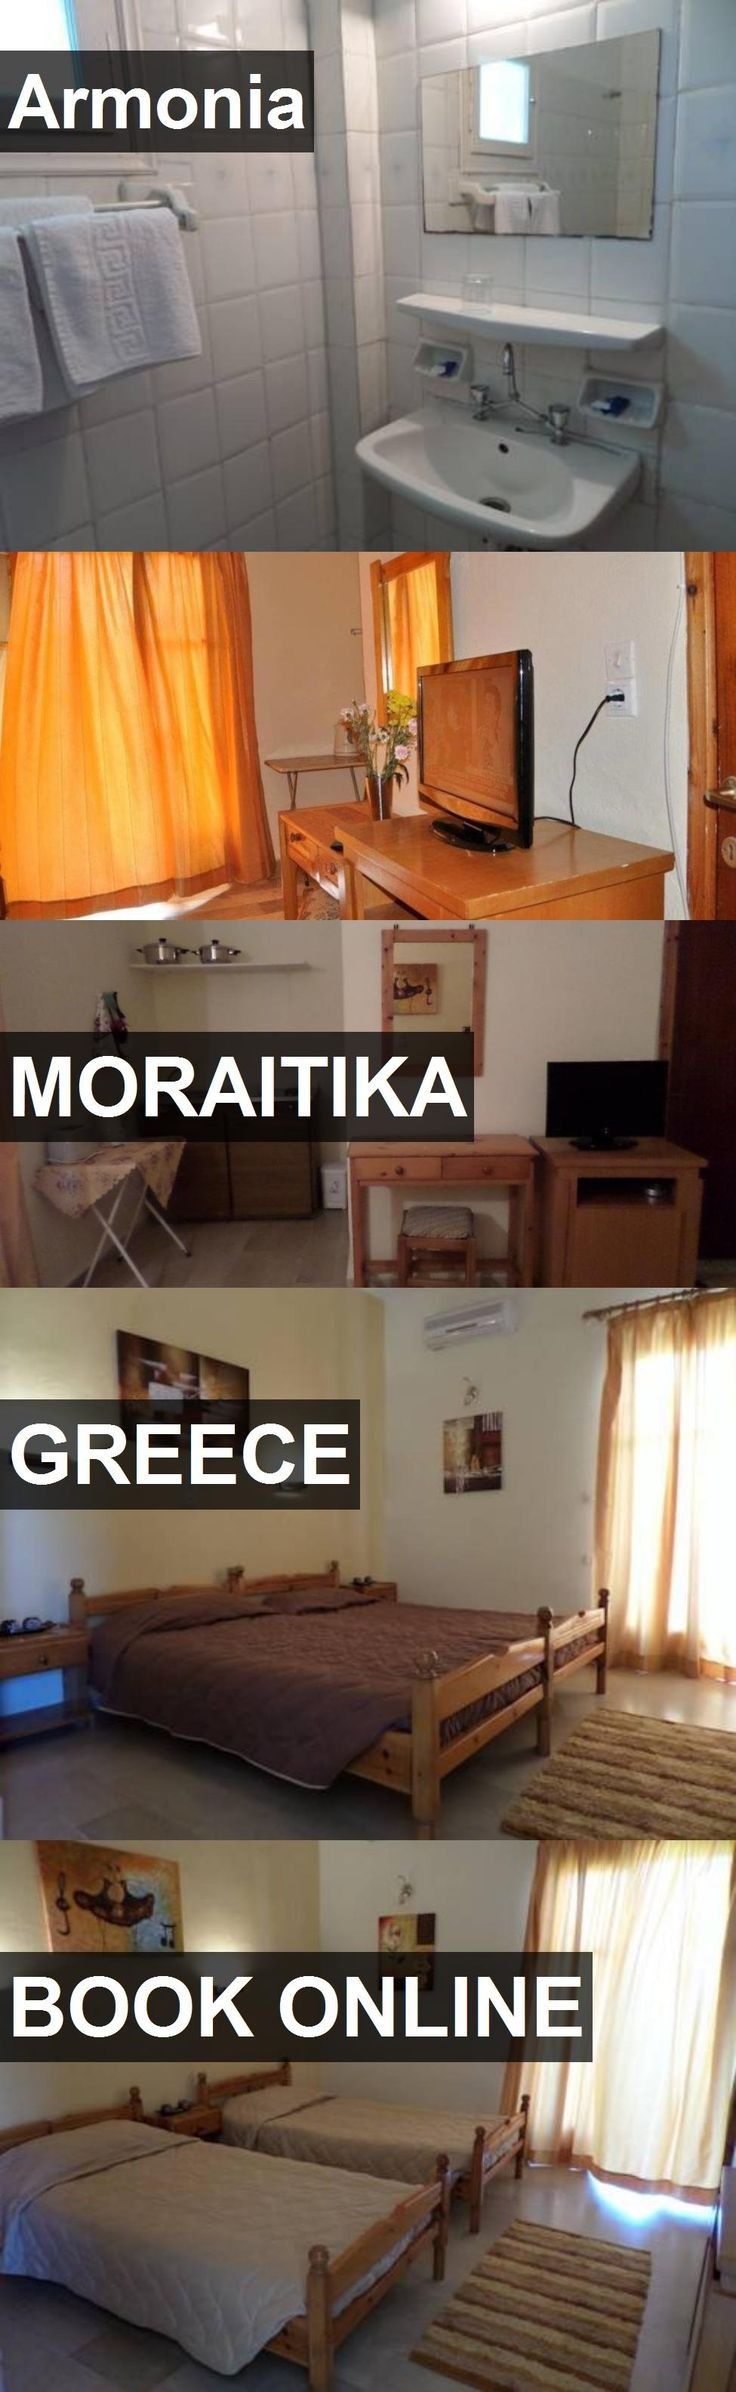 Hotel Armonia in Moraitika, Greece. For more information, photos, reviews and best prices please follow the link. #Greece #Moraitika #travel #vacation #hotel